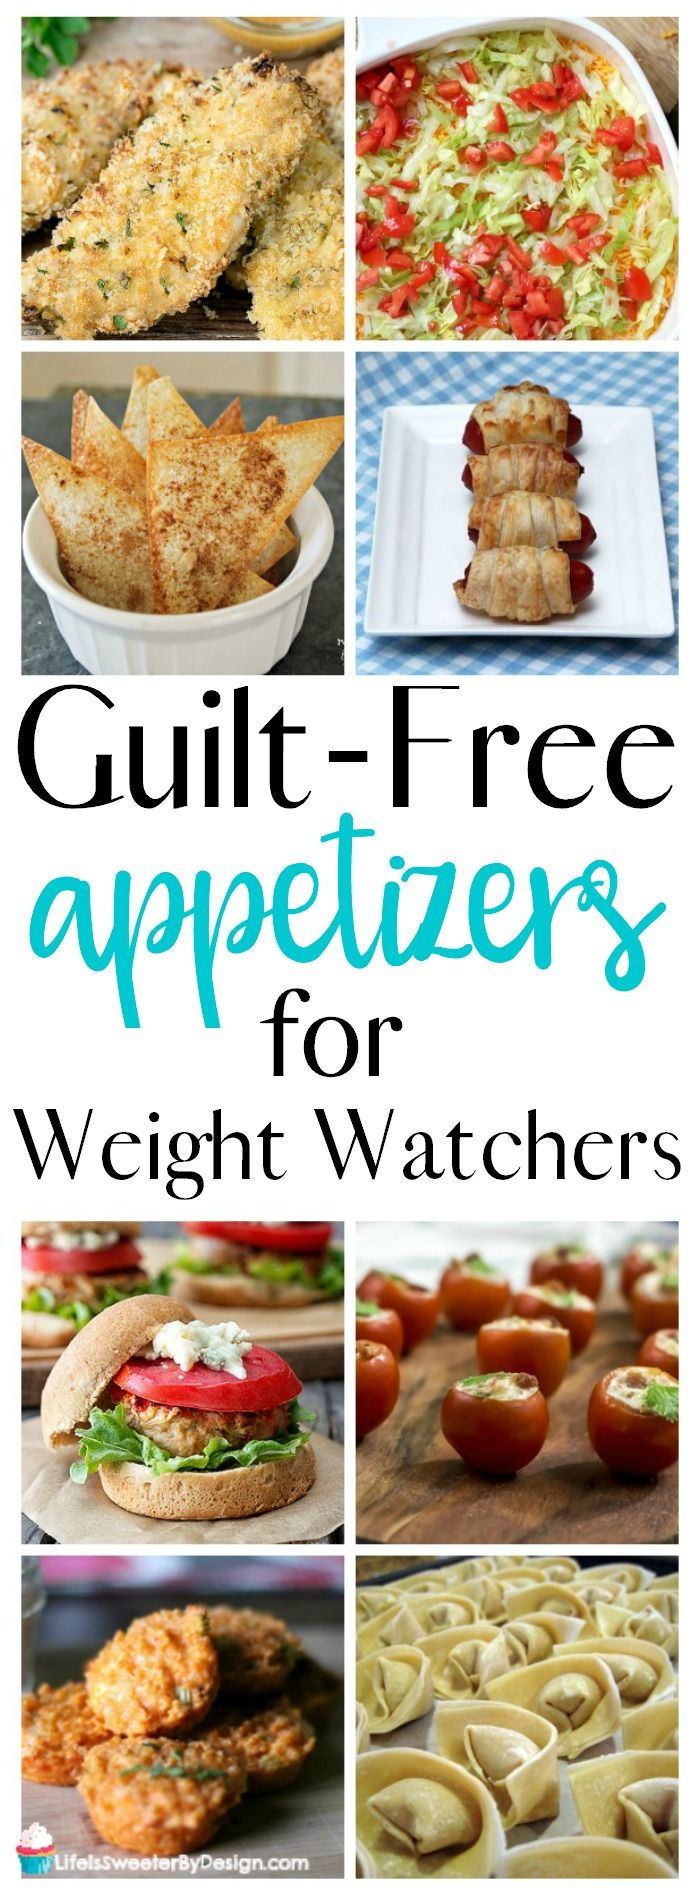 Here are the best guilt-free Weight Watchers appetizers for game day. These Weight Watchers recipes are perfect for Super Bowl or any party.